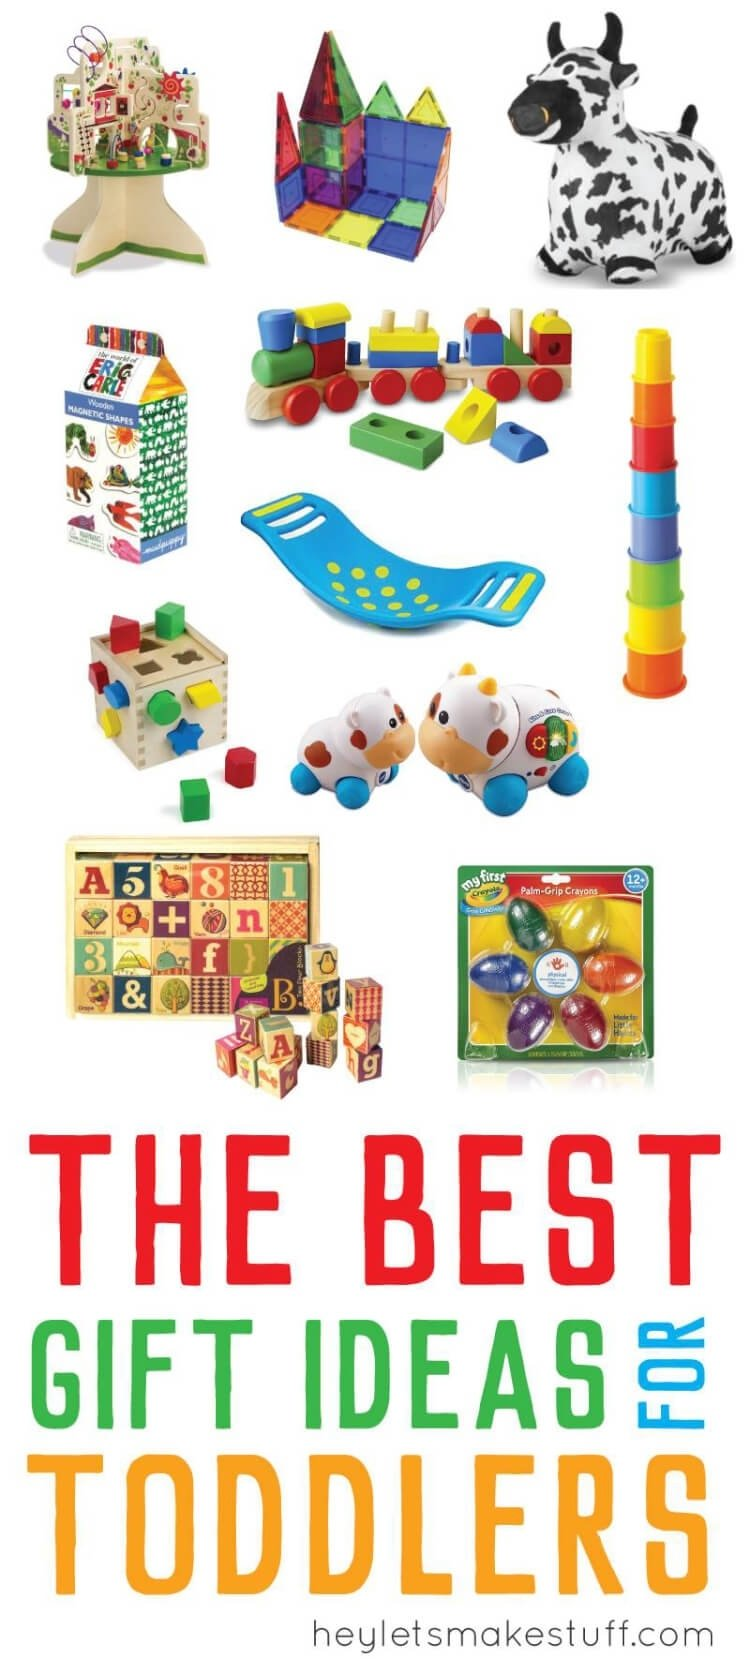 10 Gorgeous Christmas Gift Ideas For Toddlers the best gift ideas for boys ages 8 11 happiness is homemade 19 2021